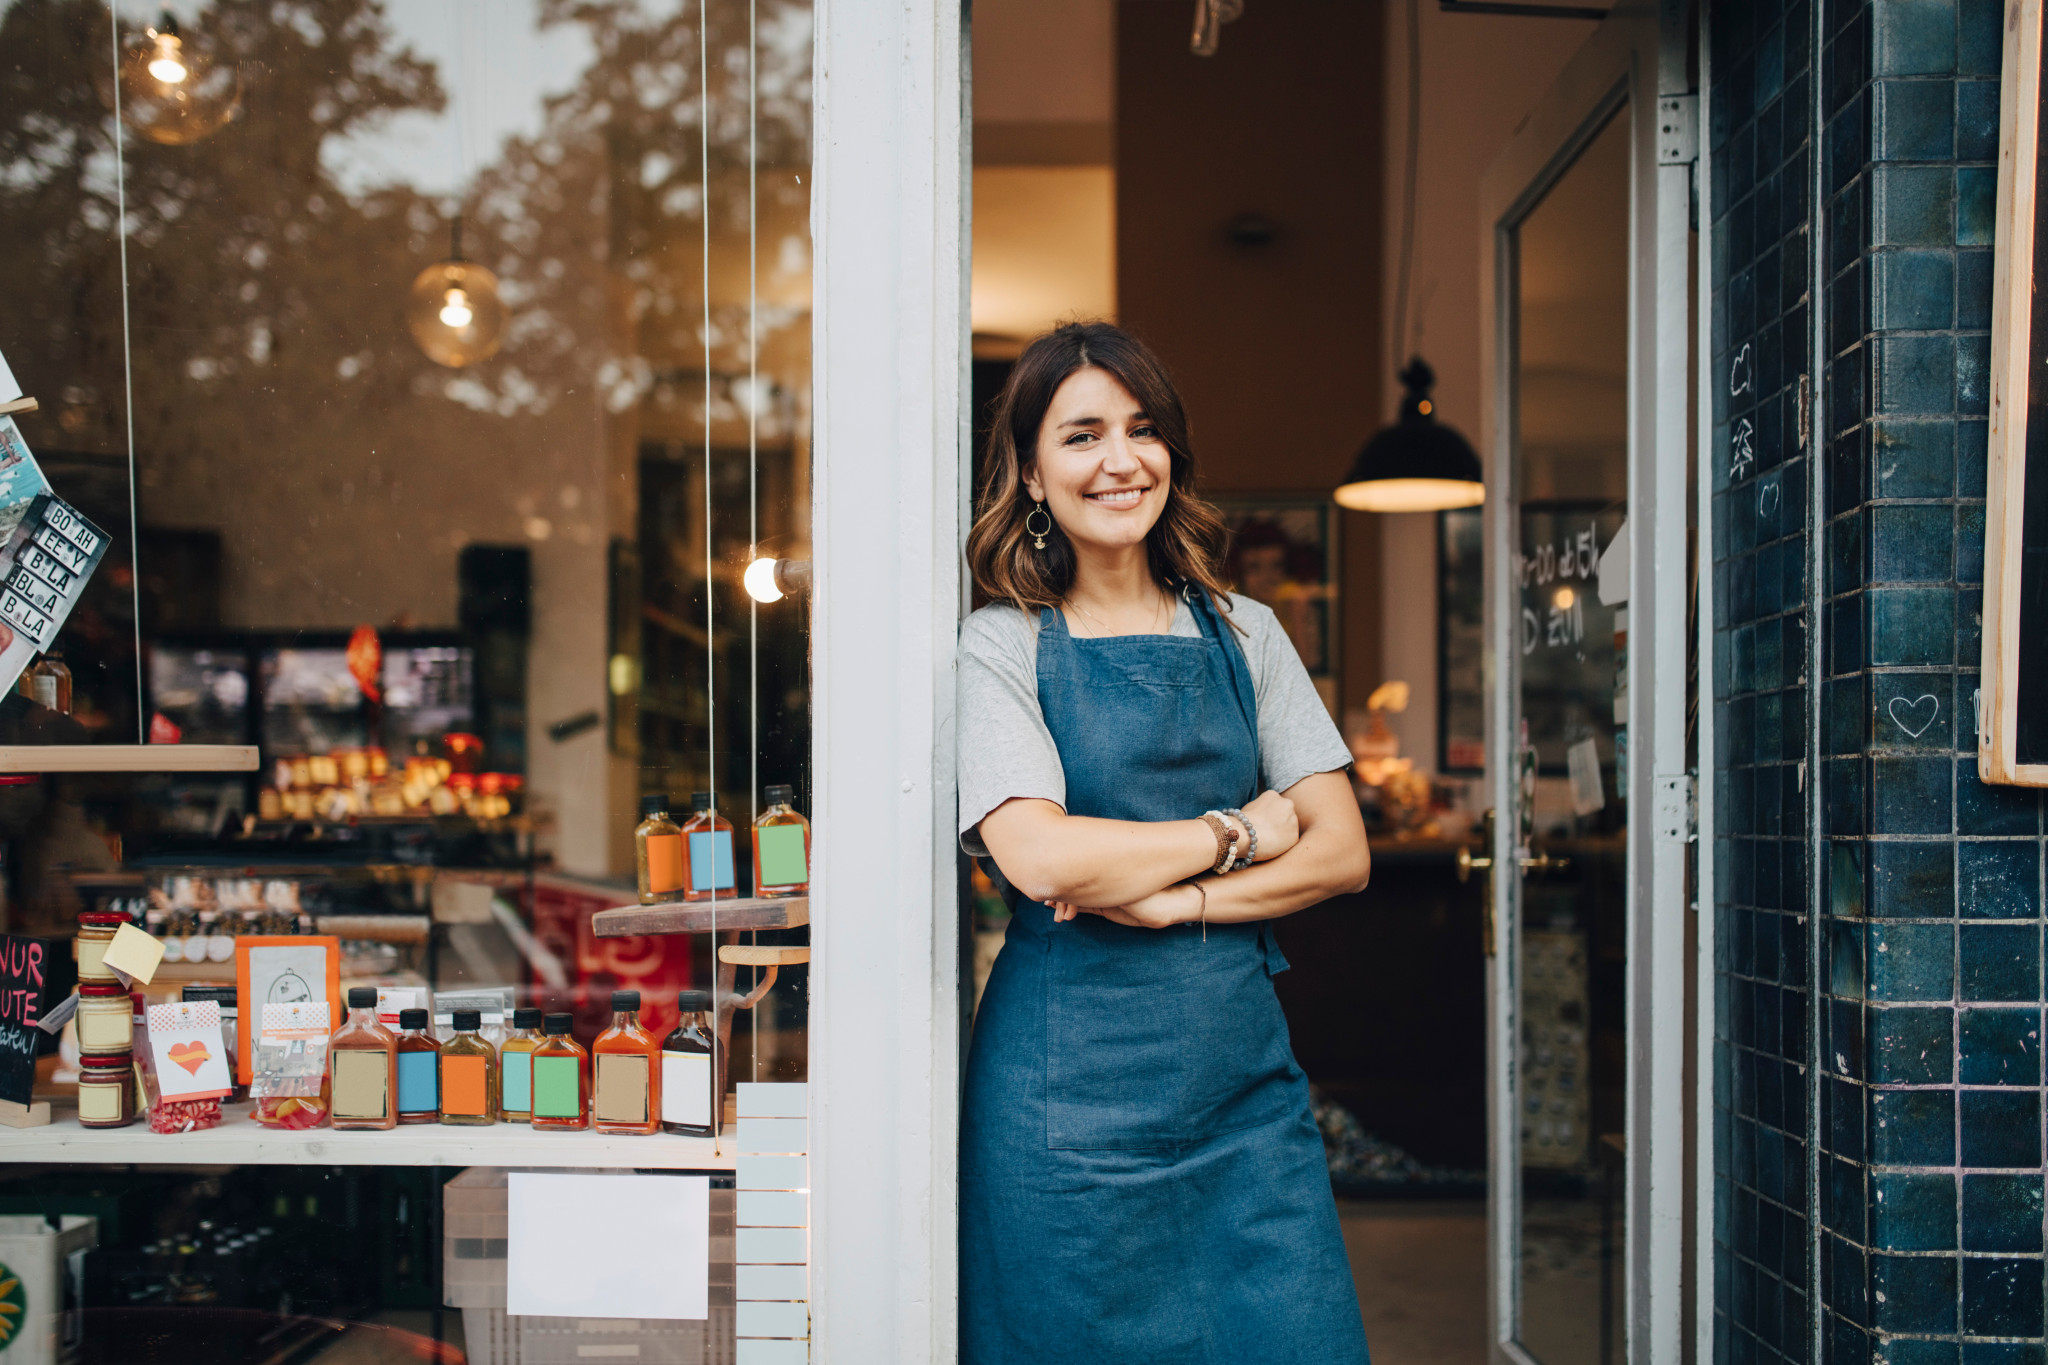 10 Essential Marketing Tips For Small Business In 2020